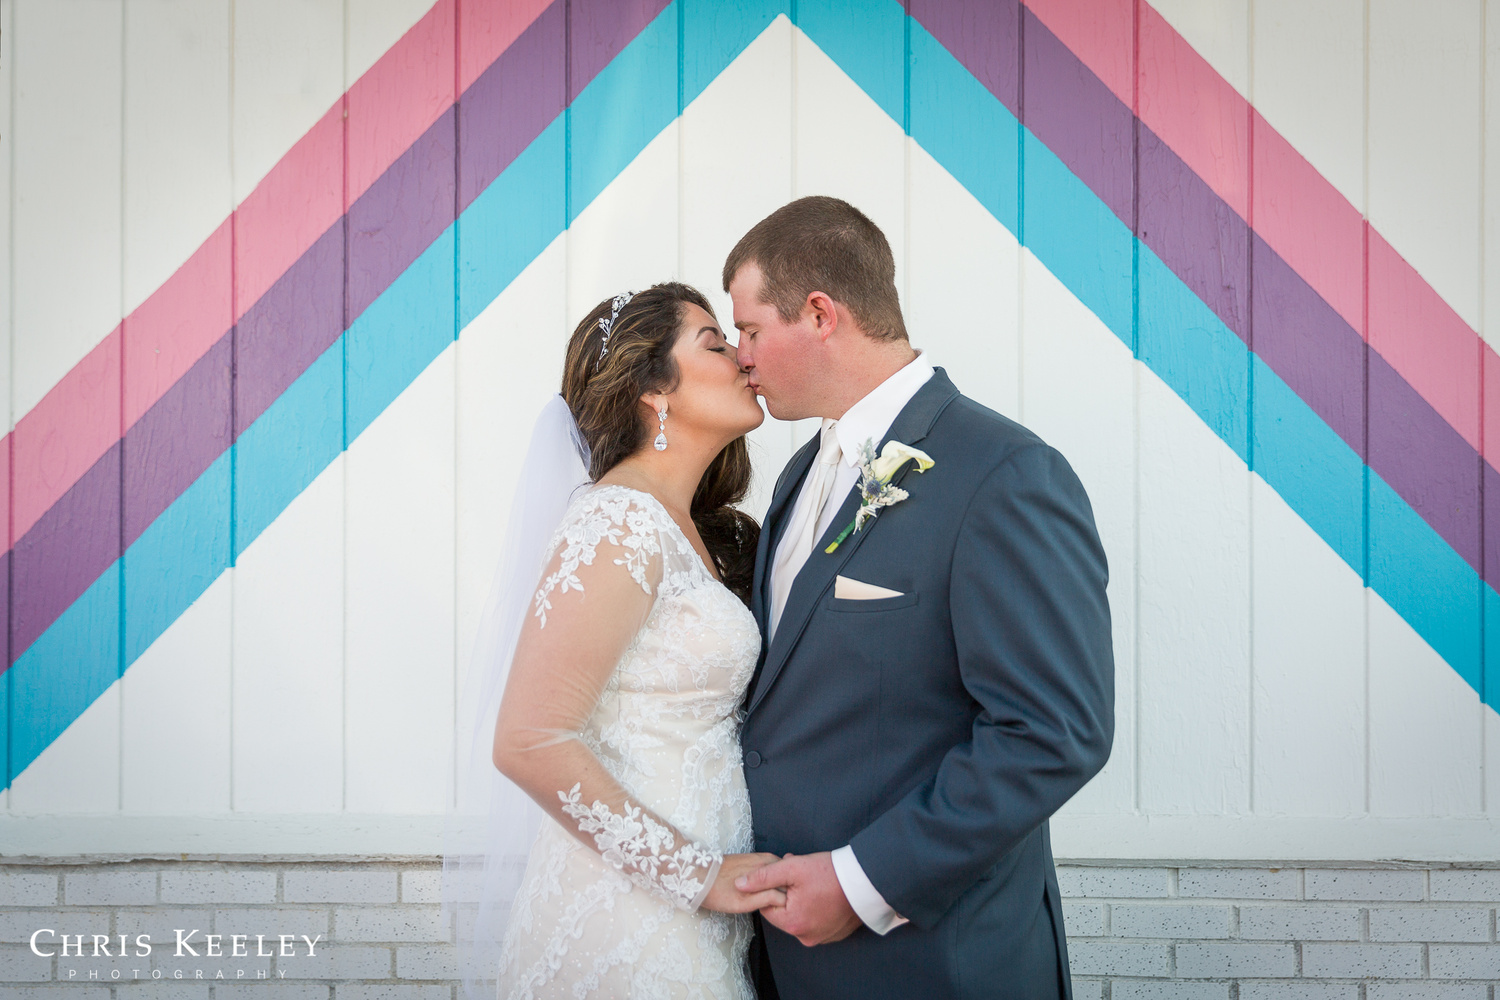 Kiss by Chris Keeley